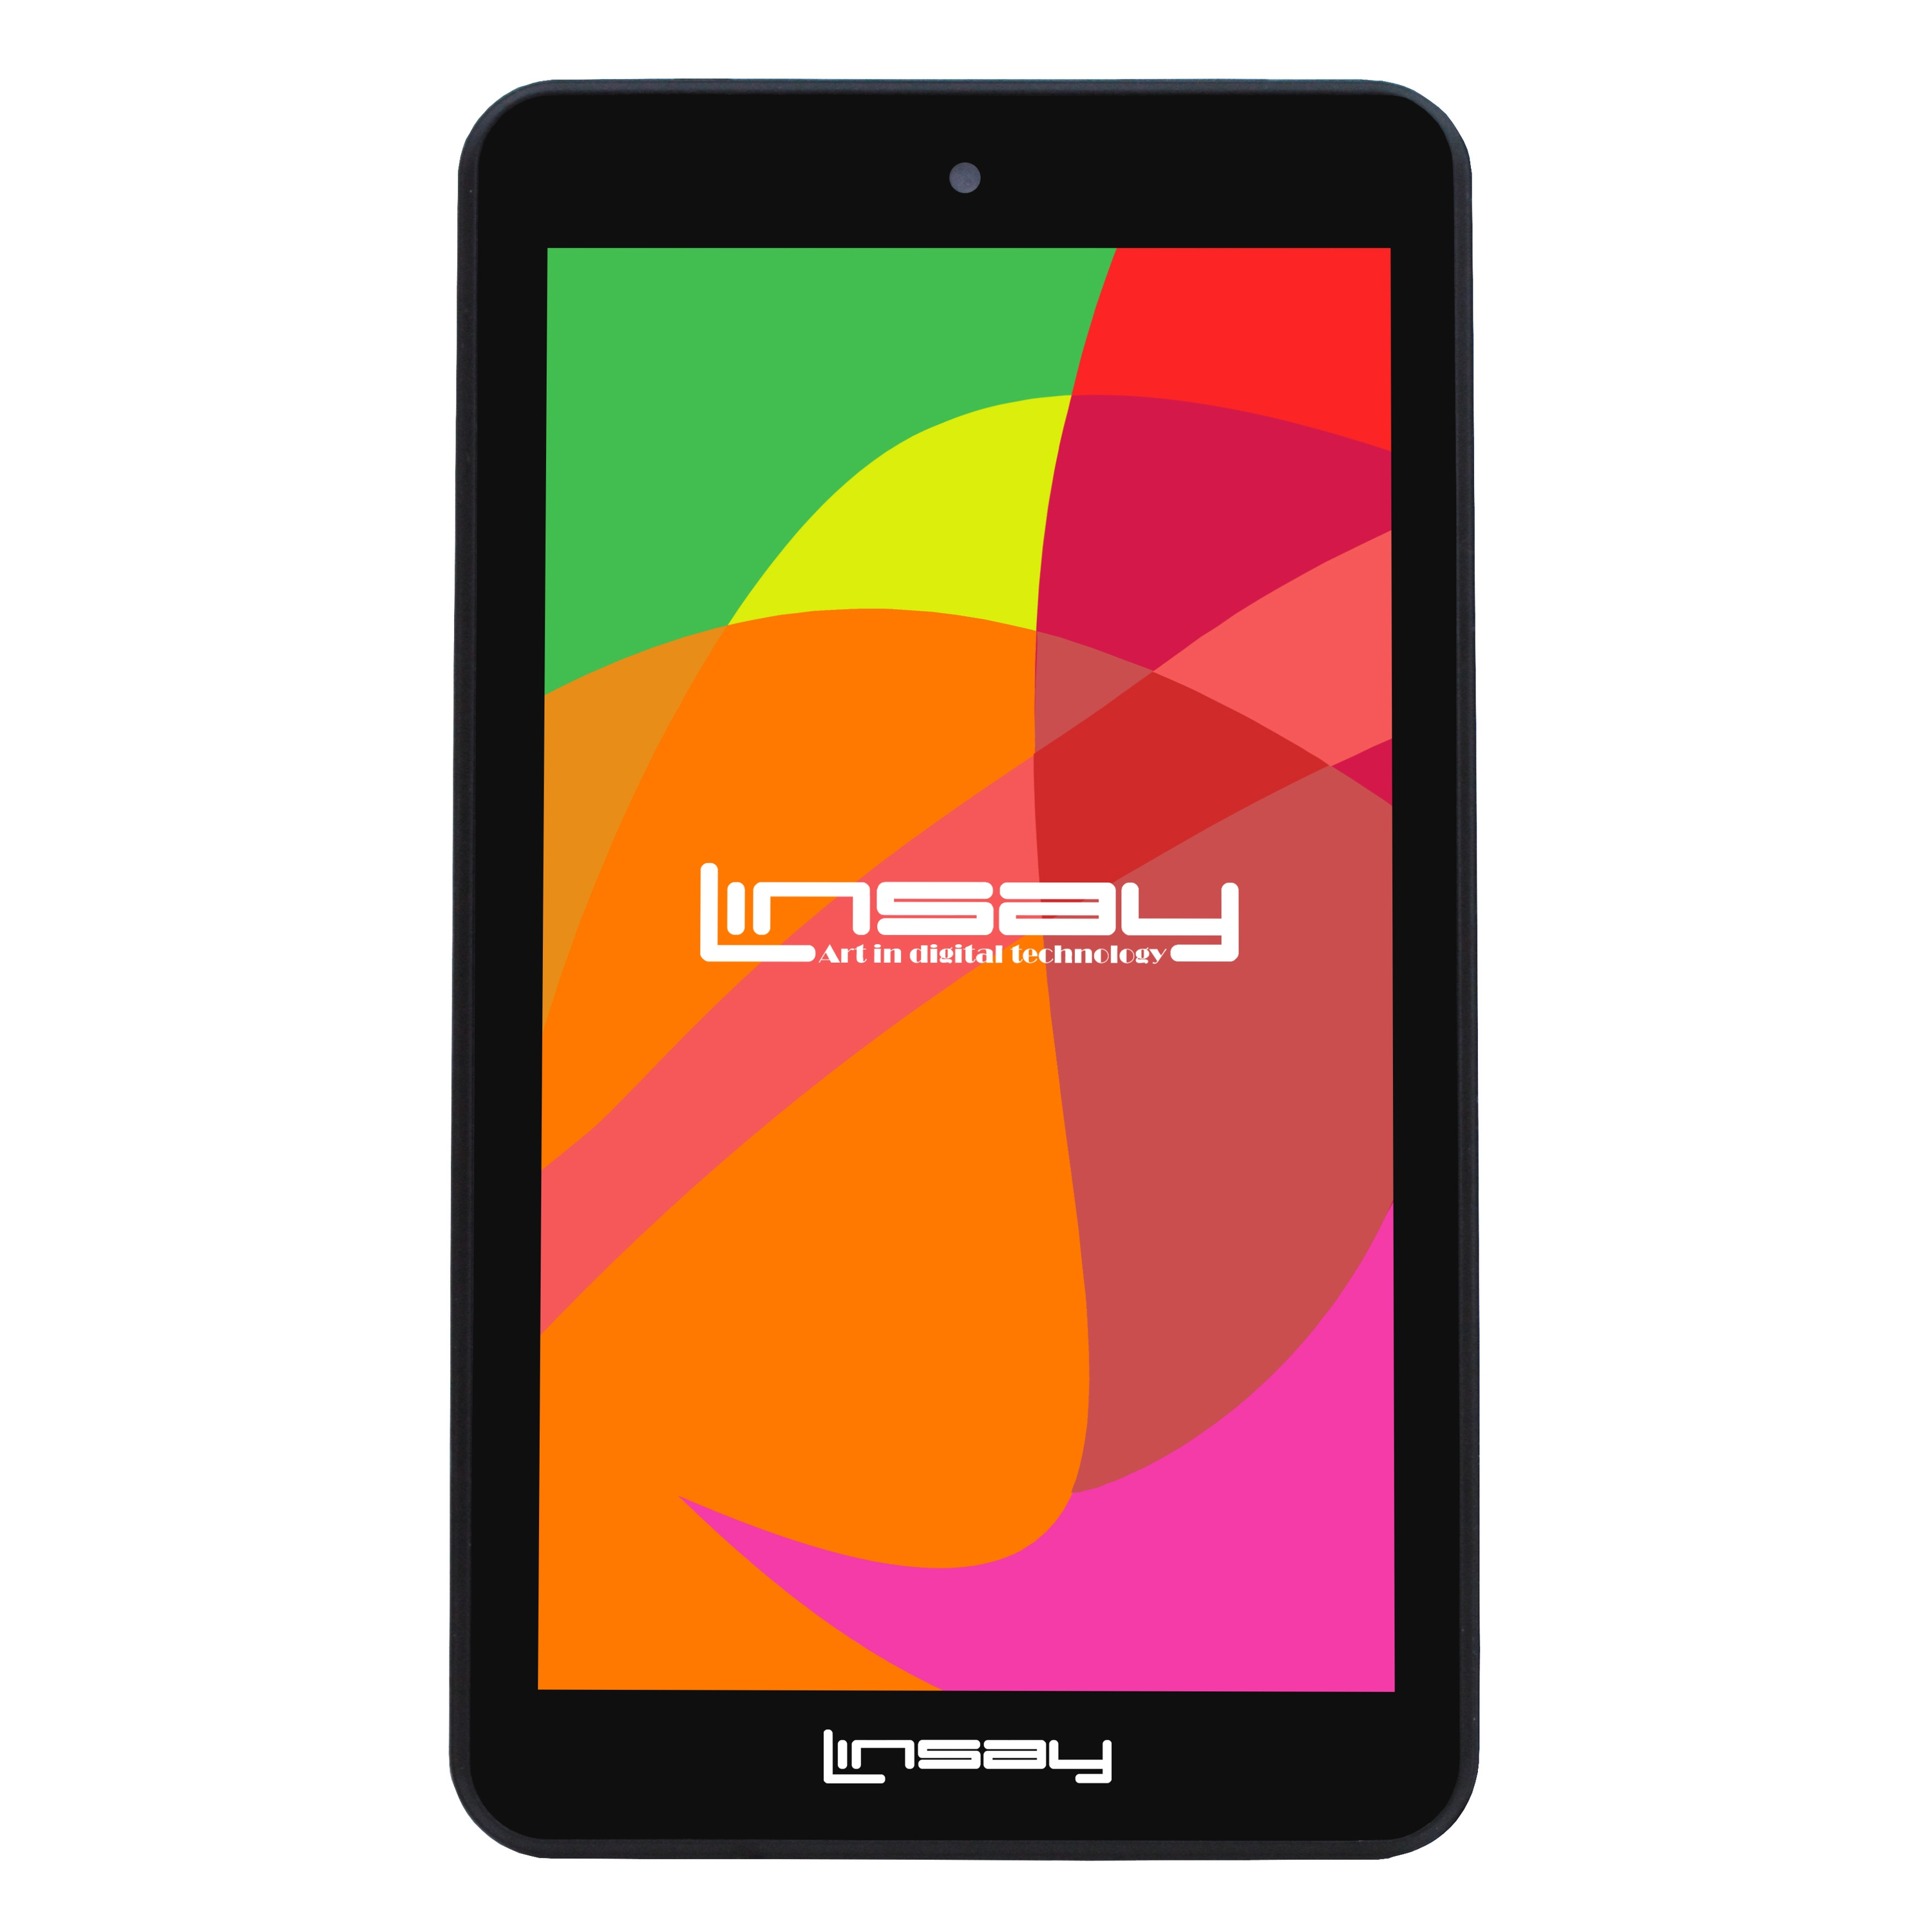 "LINSAY 7"" 1024x600 HD Touchscreen Quad-Core Dual-Camera 8GB Tablet PC Featuring Android 6.0 Operating System"